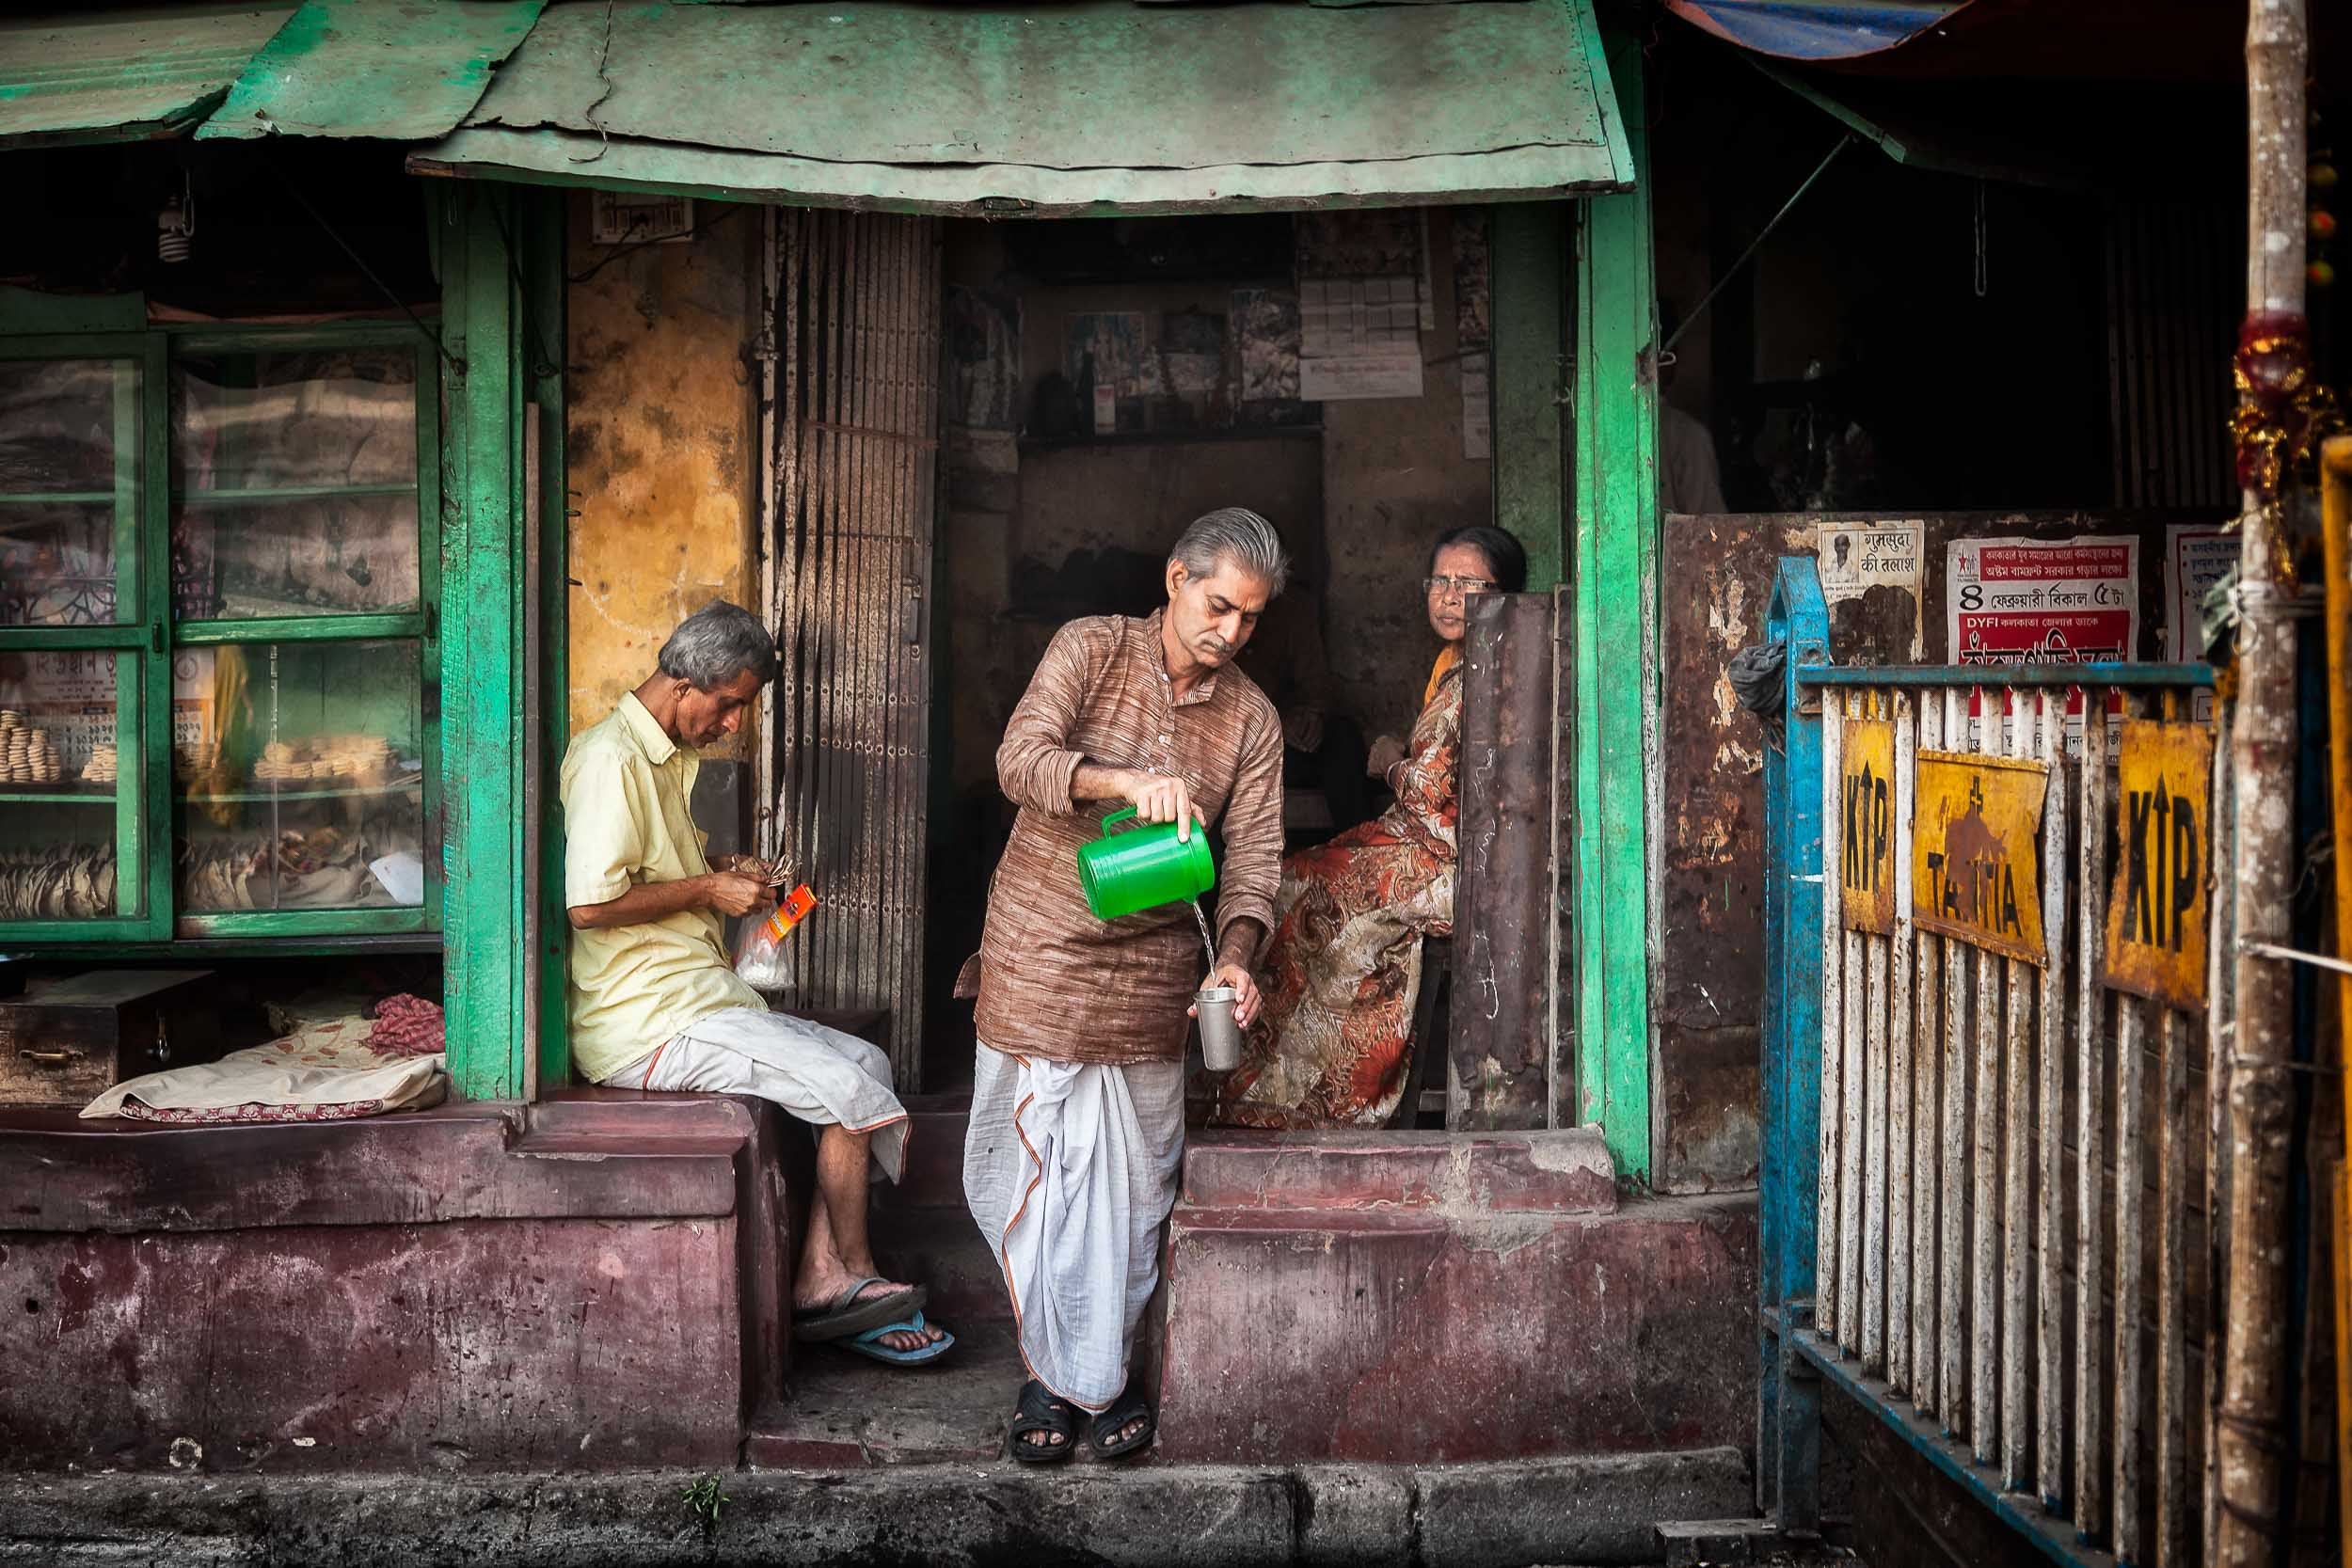 A    candid image    of a    cafe proprietor    pouring a cup of water from a green jug in front of his establishment in    Kolkata, India   .